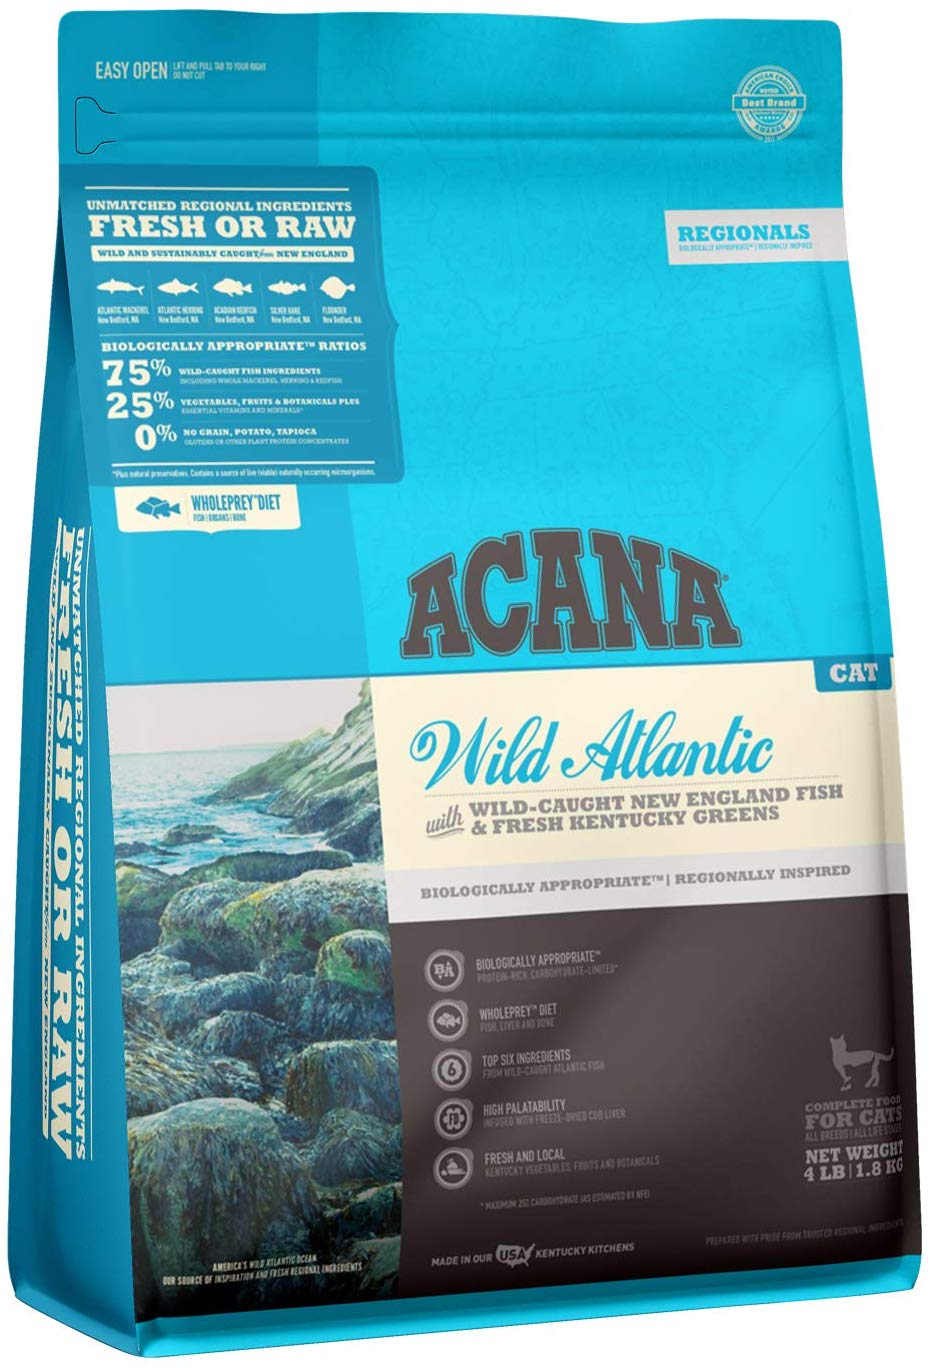 Wild Atlantic Wild-Caught Fish & Greens